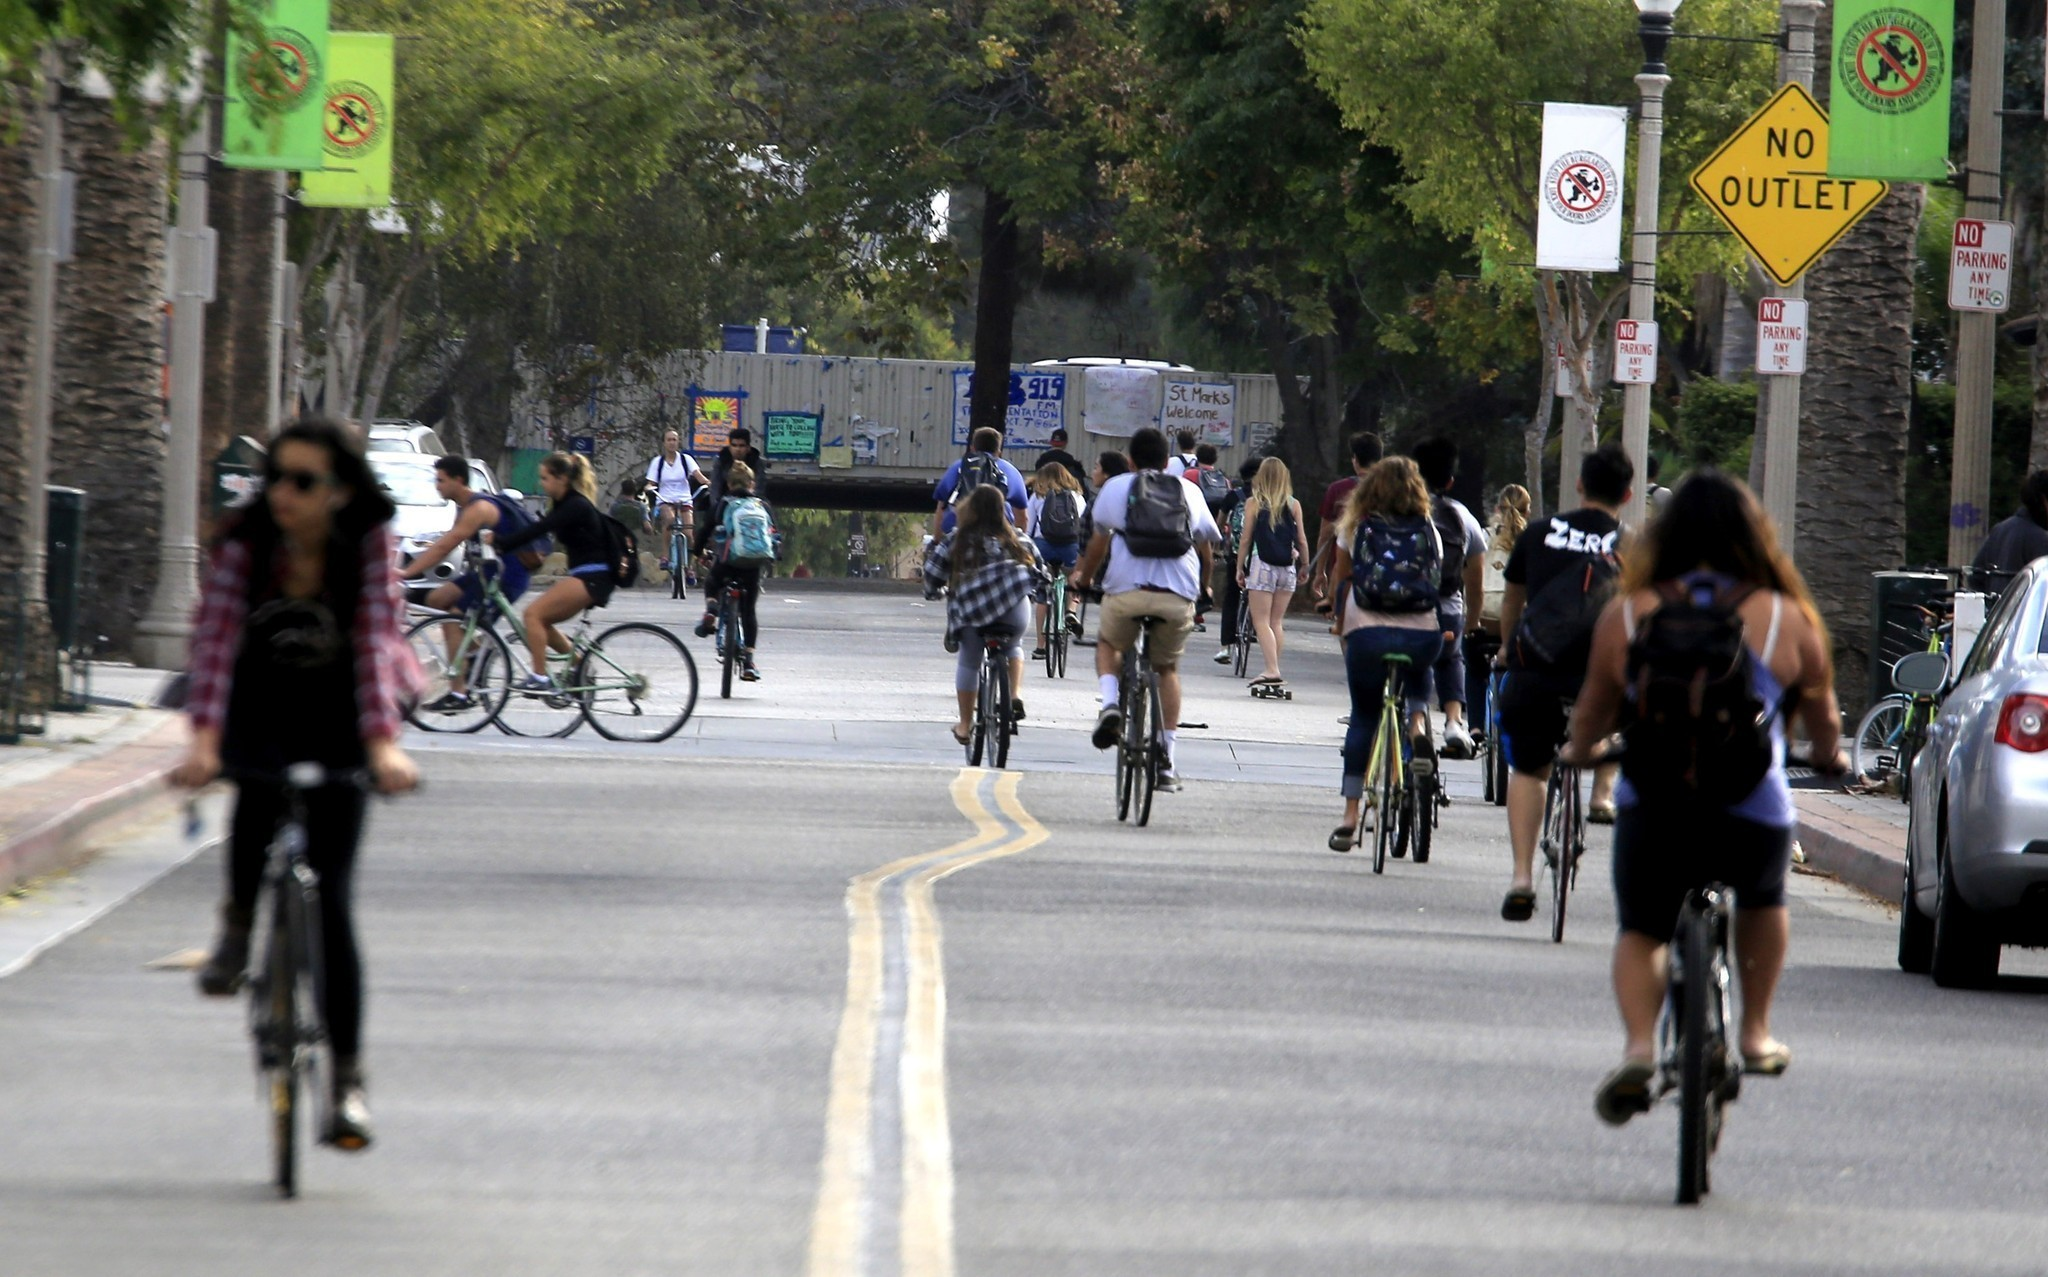 authorities seek to discourage halloween problems in isla vista la times - Uc Santa Barbara Halloween